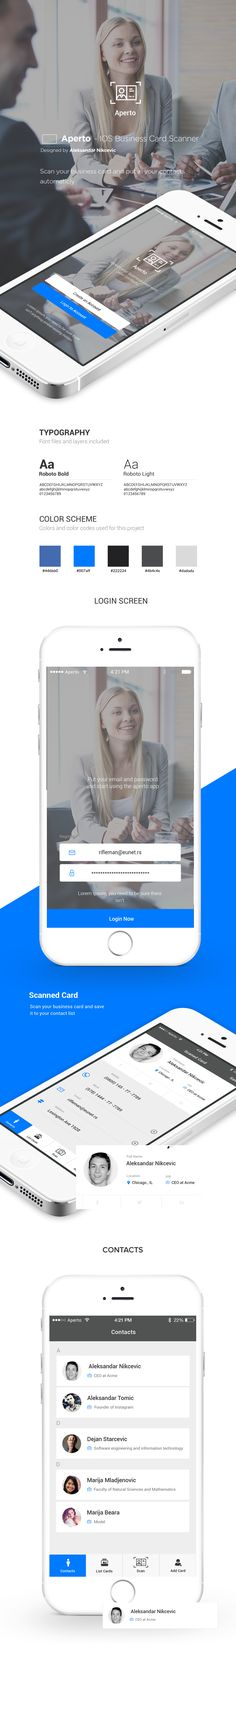 Business Card Scanner App Design on Behance